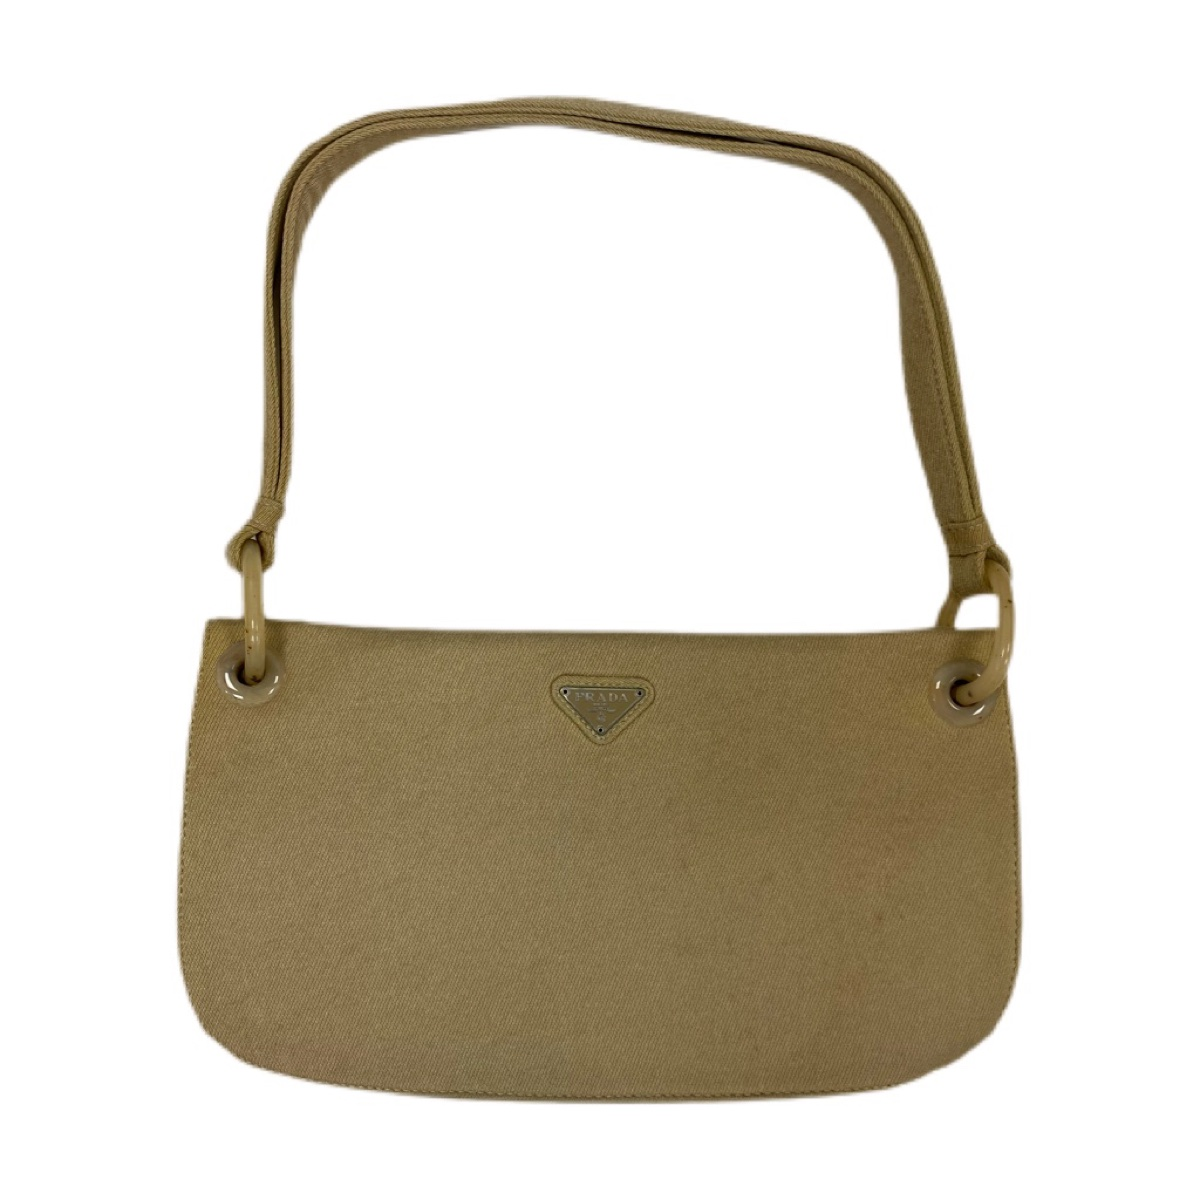 Authentic prada vintage beige hand / shoulder bag